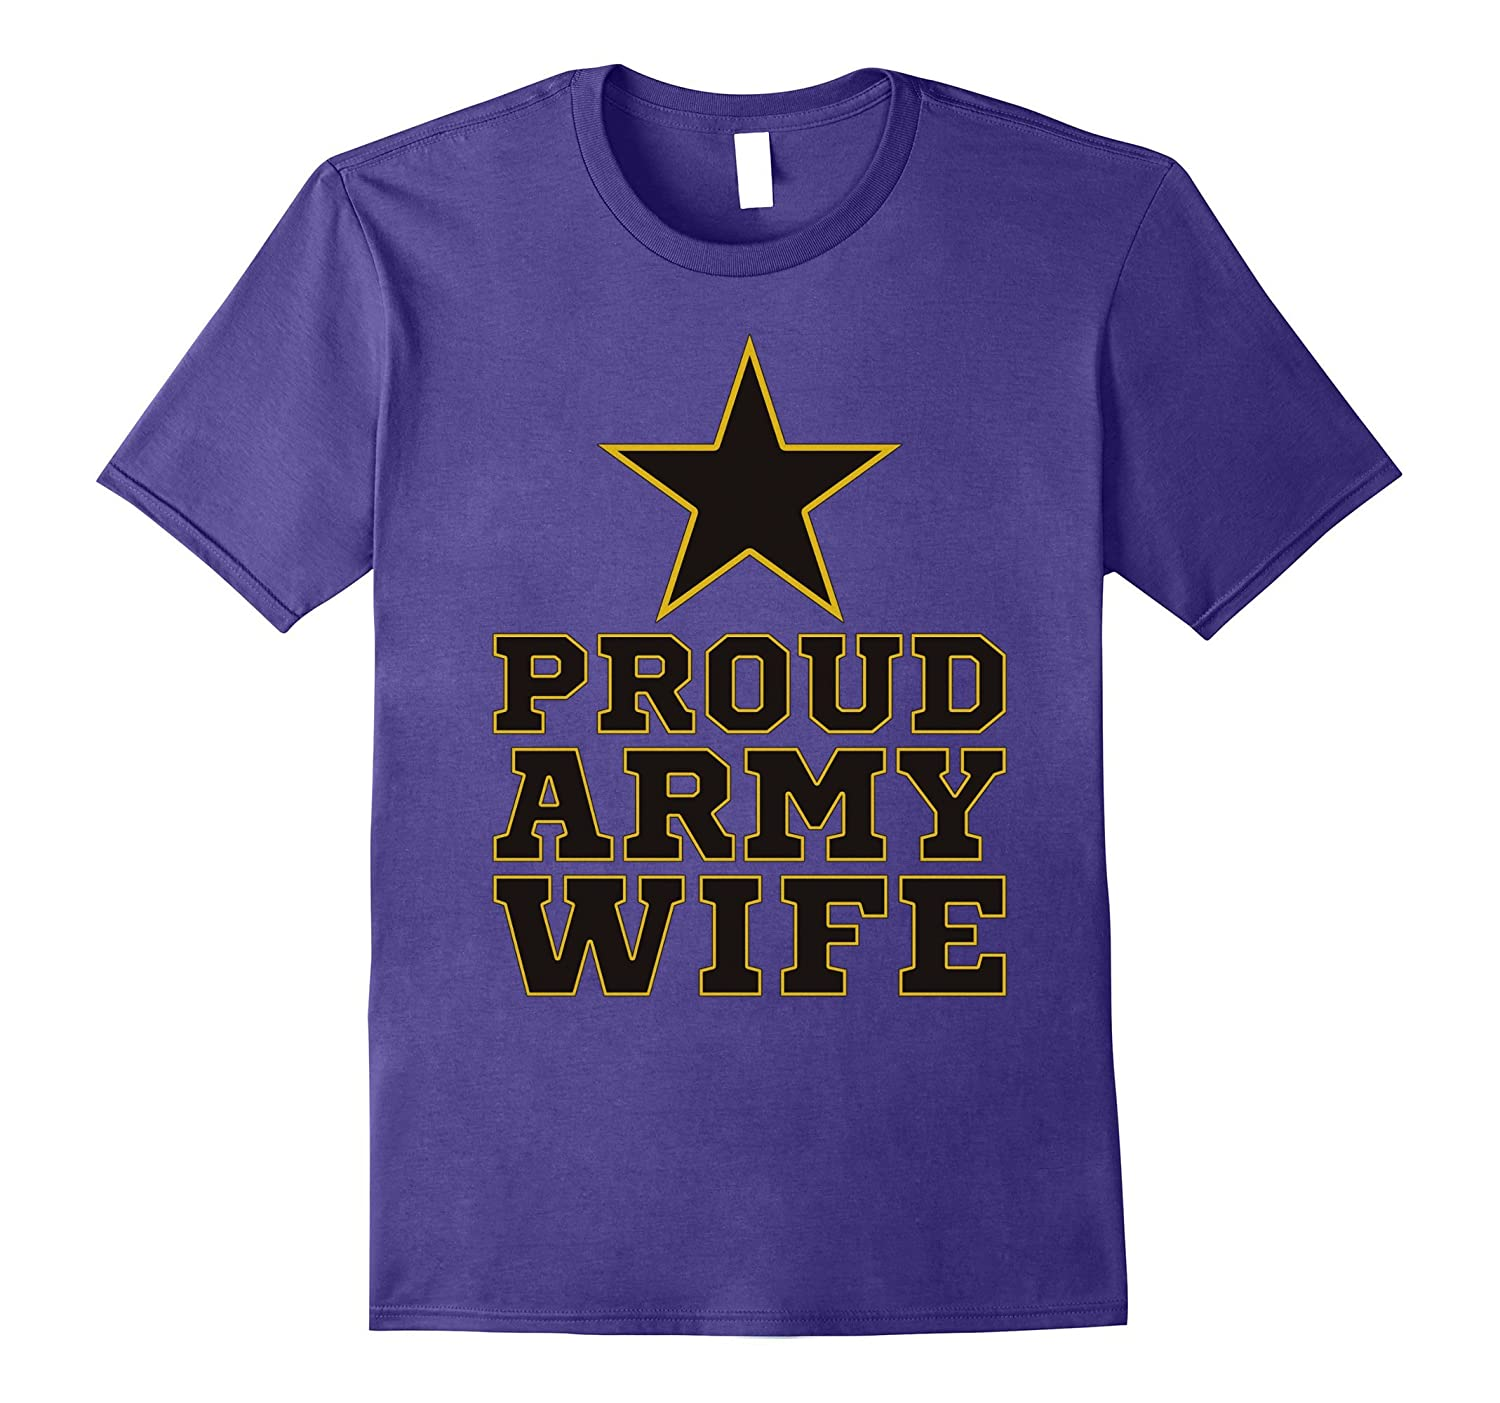 Proud Army wife pink graphic short sleeves t shirts tees-Art